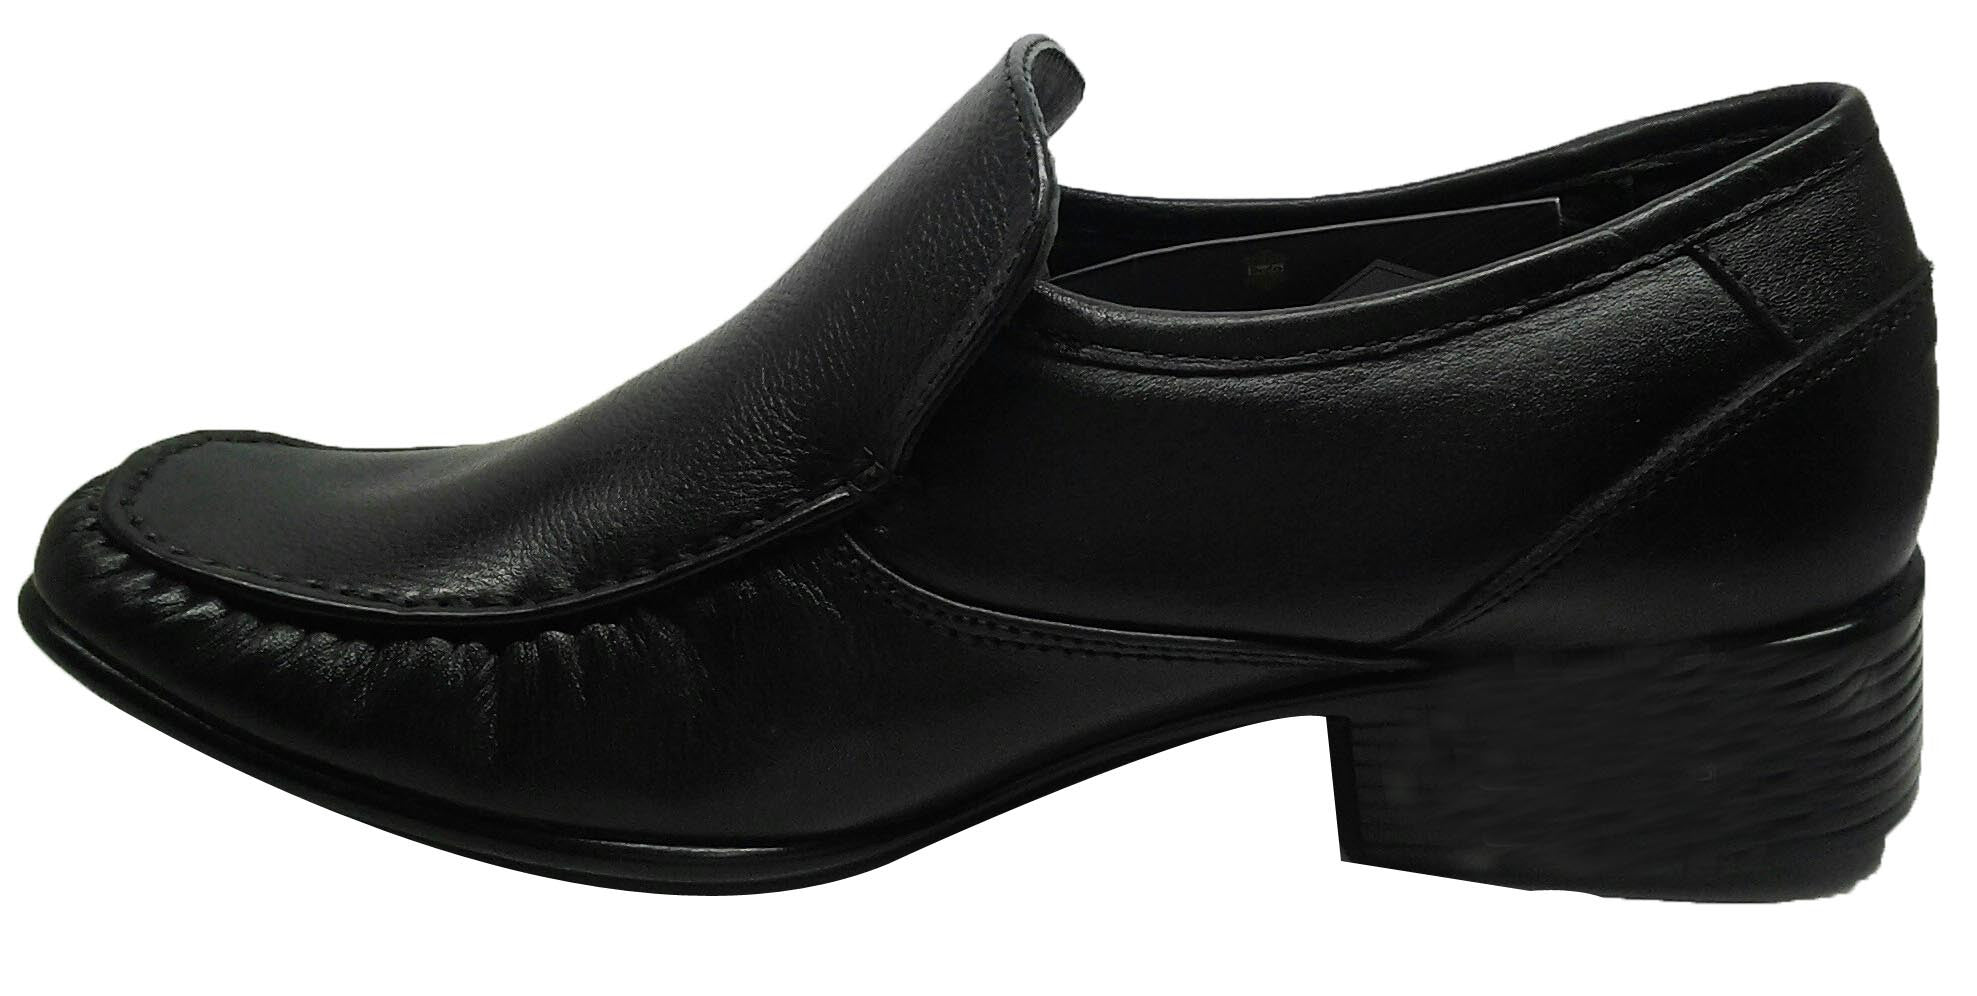 Goyalsons Shoes 1890